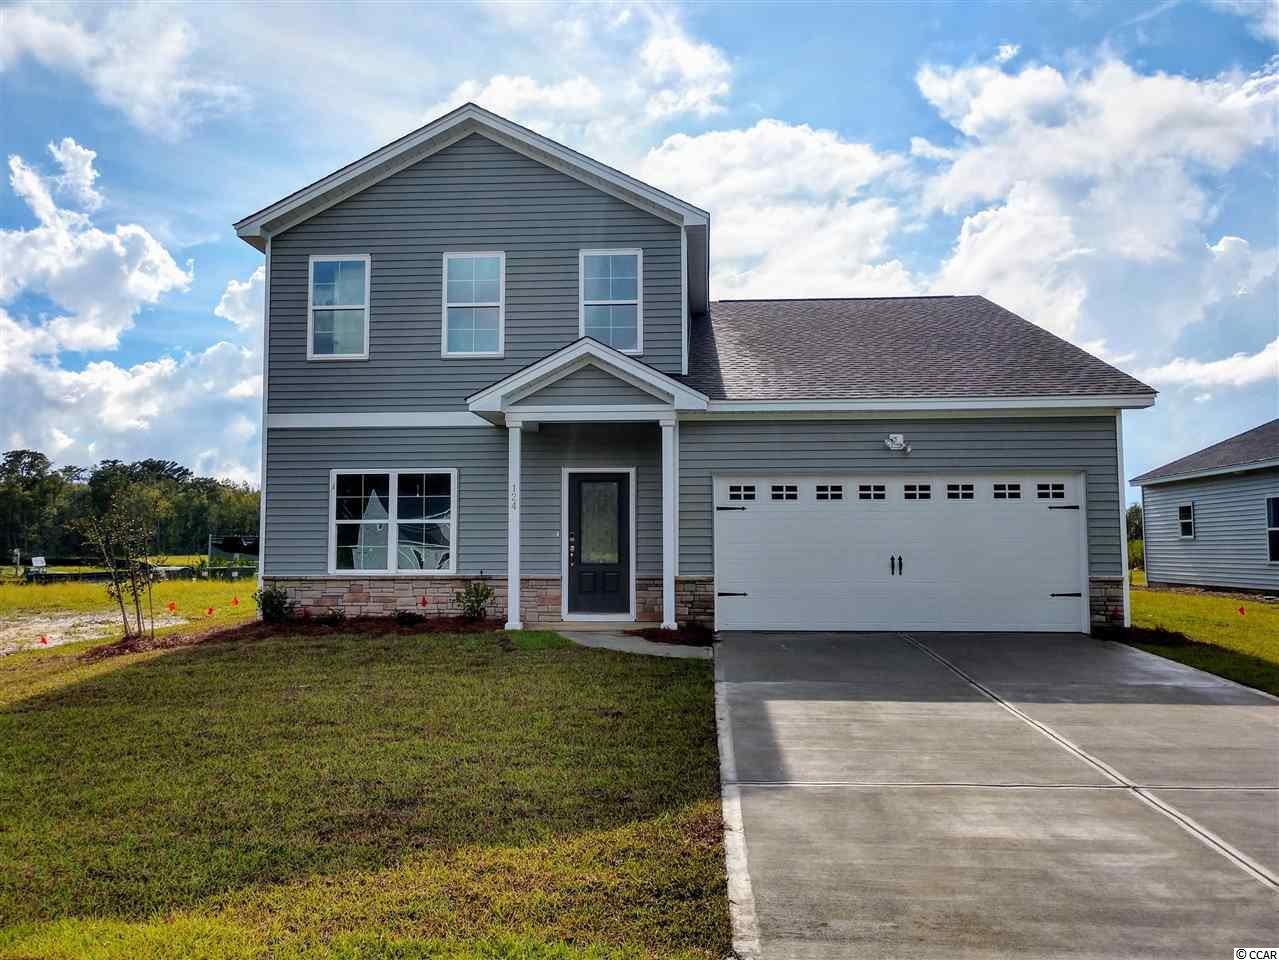 Now Selling in Sugarloaf with a pool on site! Just a few minutes from Myrtle Beach and North Myrtle Beach, in Carolina Forest School District, shopping and the beach! This Pickens plan has 2,431 htd sq ft, featuring an open family room/kitchen combo area, a flex room/office/dining room, 4 bedrooms with the master down, a large walk in attic and a loft upstairs. Stainless GE appliances with gas range/oven, wood-look easy care Luxury Vinyl Plank flooring in all the common areas downstairs, and lawn irrigation system completes this great home! All measurements are considered accurate, but not guaranteed, buyer to verify. Other included features: Advanced Framing; Natural Gas! Gas heat; Tank-less gas hot water; Recessed Ceiling lights in Kitchen; GE Appliances; Kitchen Granite counter tops; Programmable Thermostats; 9' ceilings on first floor; Energy Efficient with LED bulbs, 14-SEER HVAC system, Air Barrier, and Sealing; Architectural Roof Shingles; Vinyl siding with Lifetime Warranty. Photos are of a Pickens in another Mungo Community.